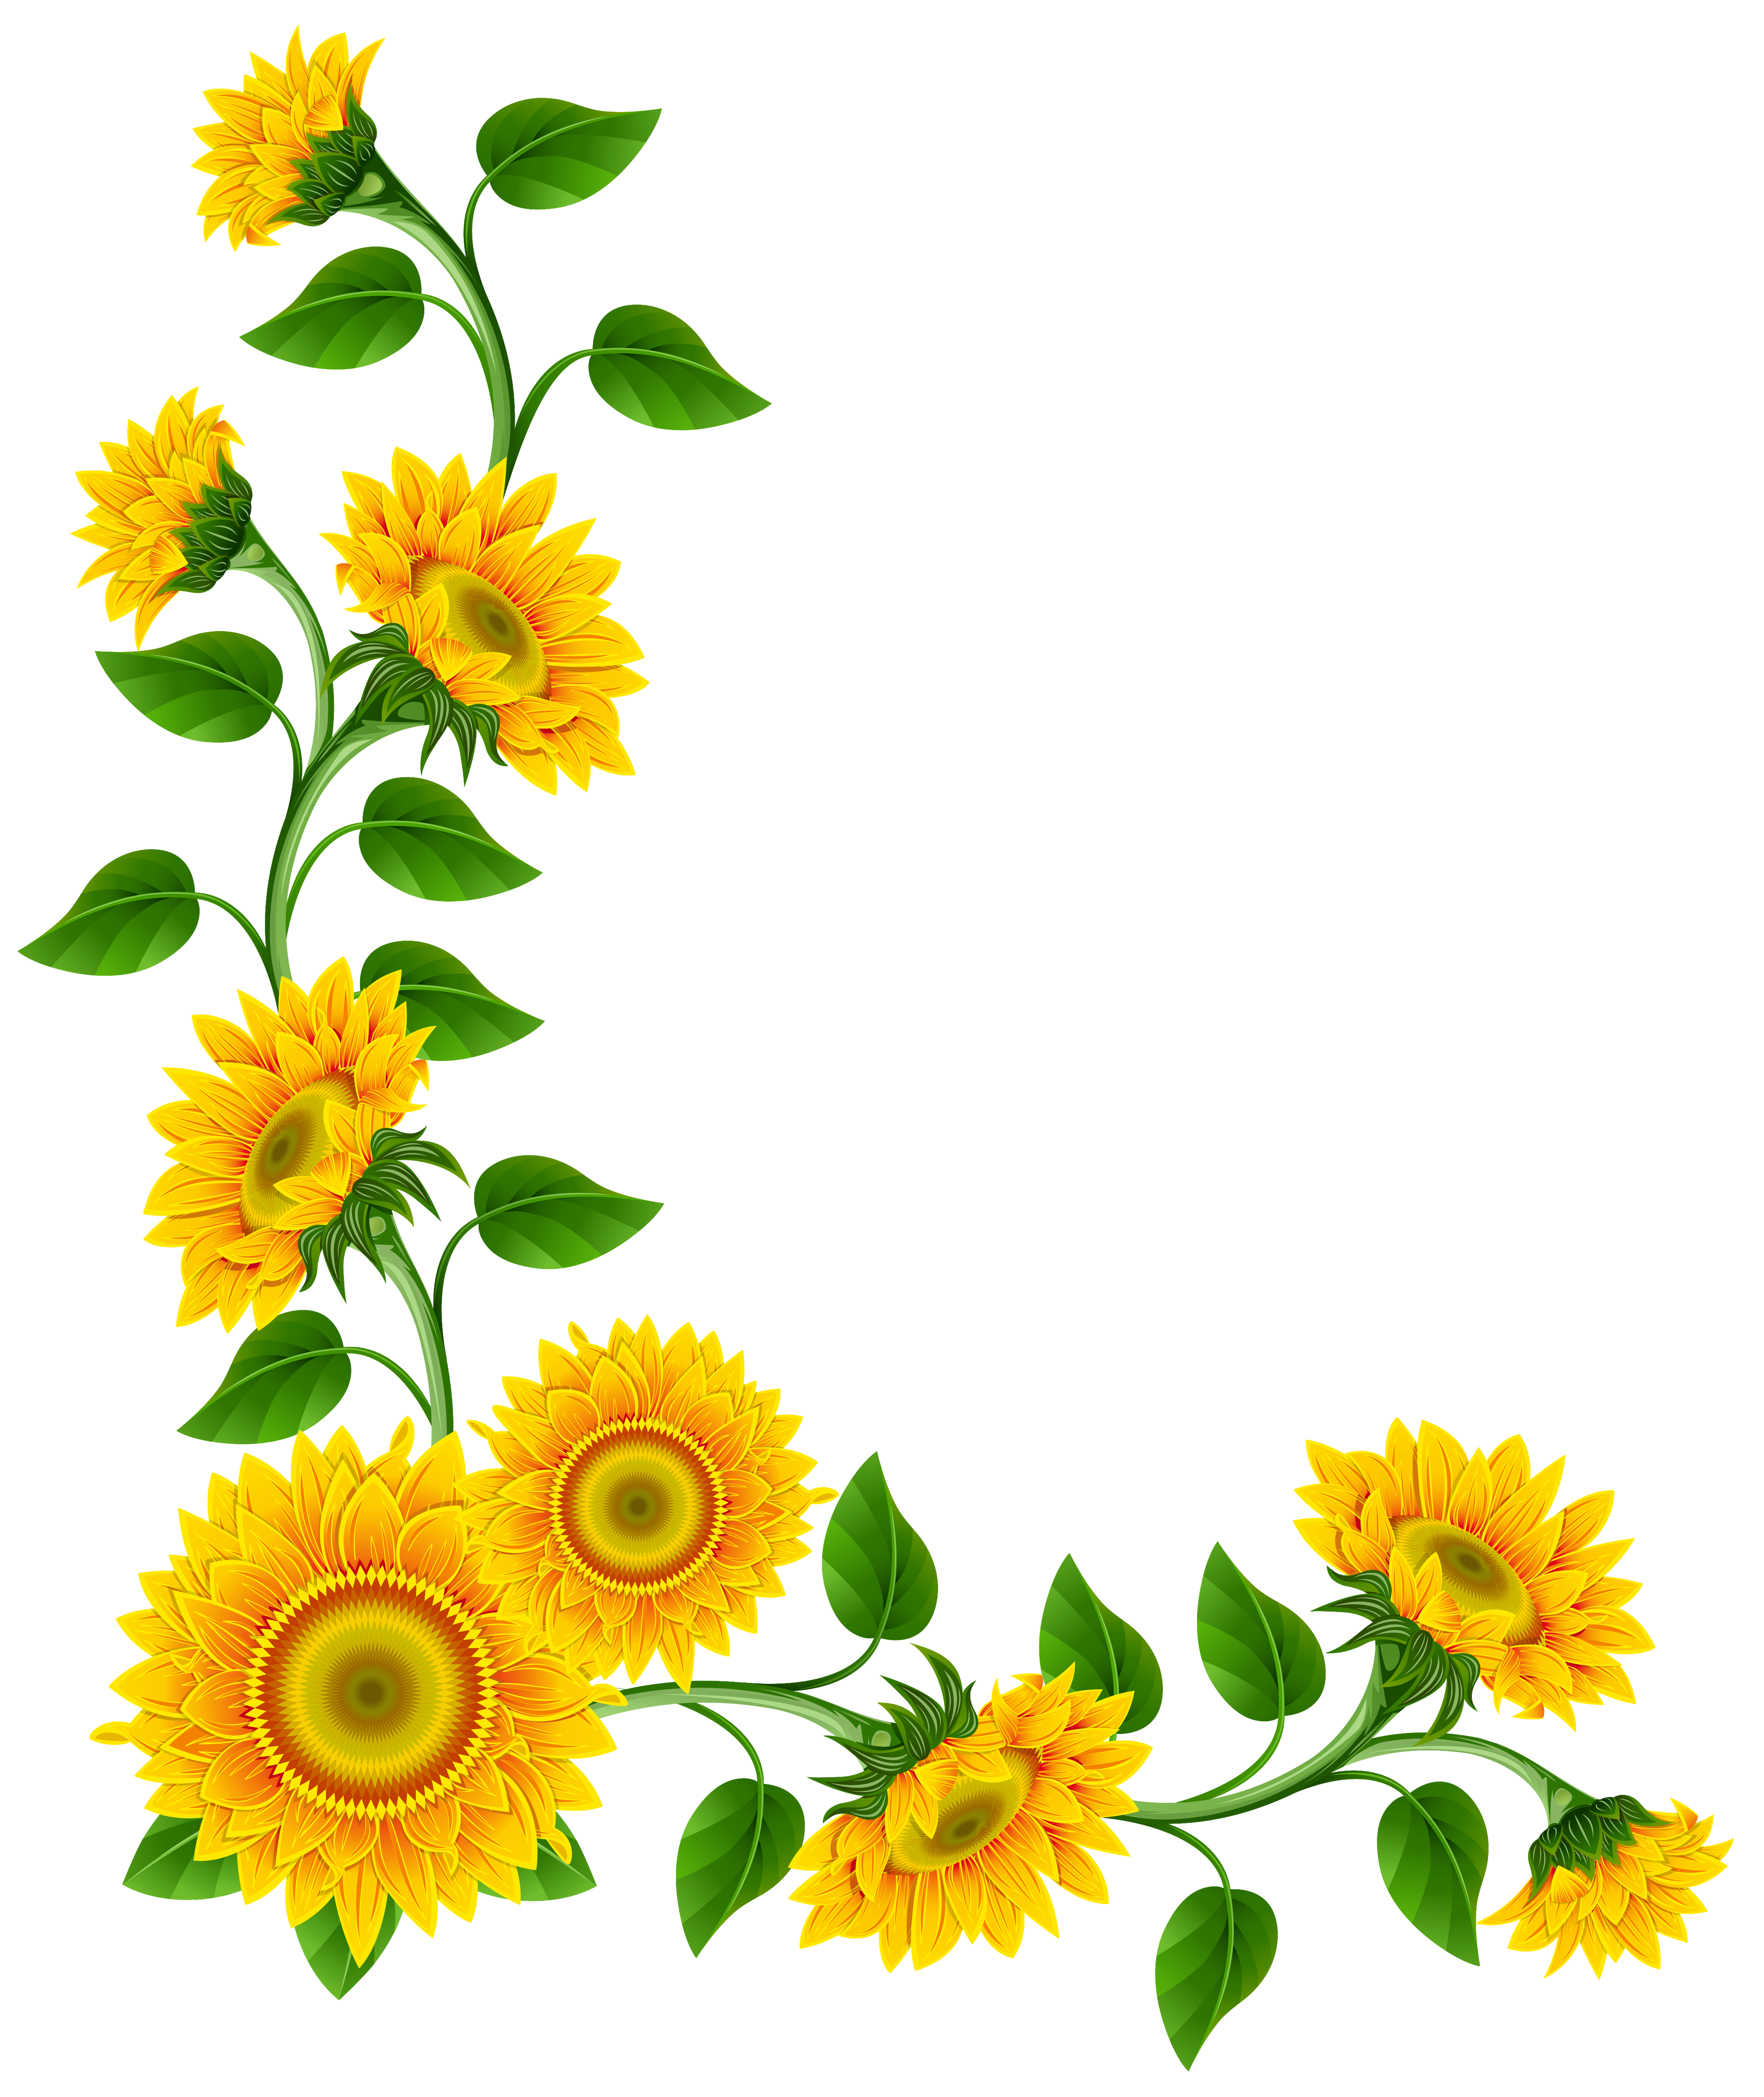 Sunflower Border - ClipArt Best